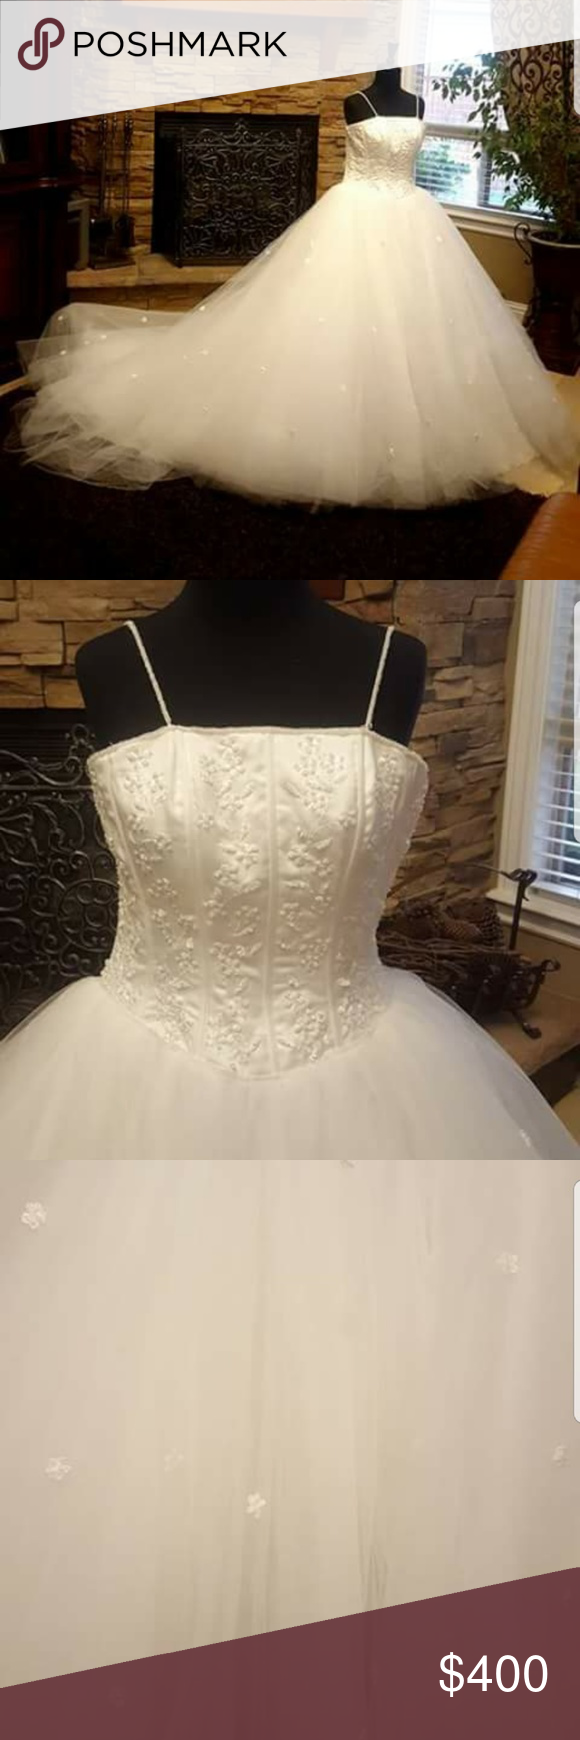 Wedding dress restoration  Princess style Mori Lee wedding dress size   My Posh Picks